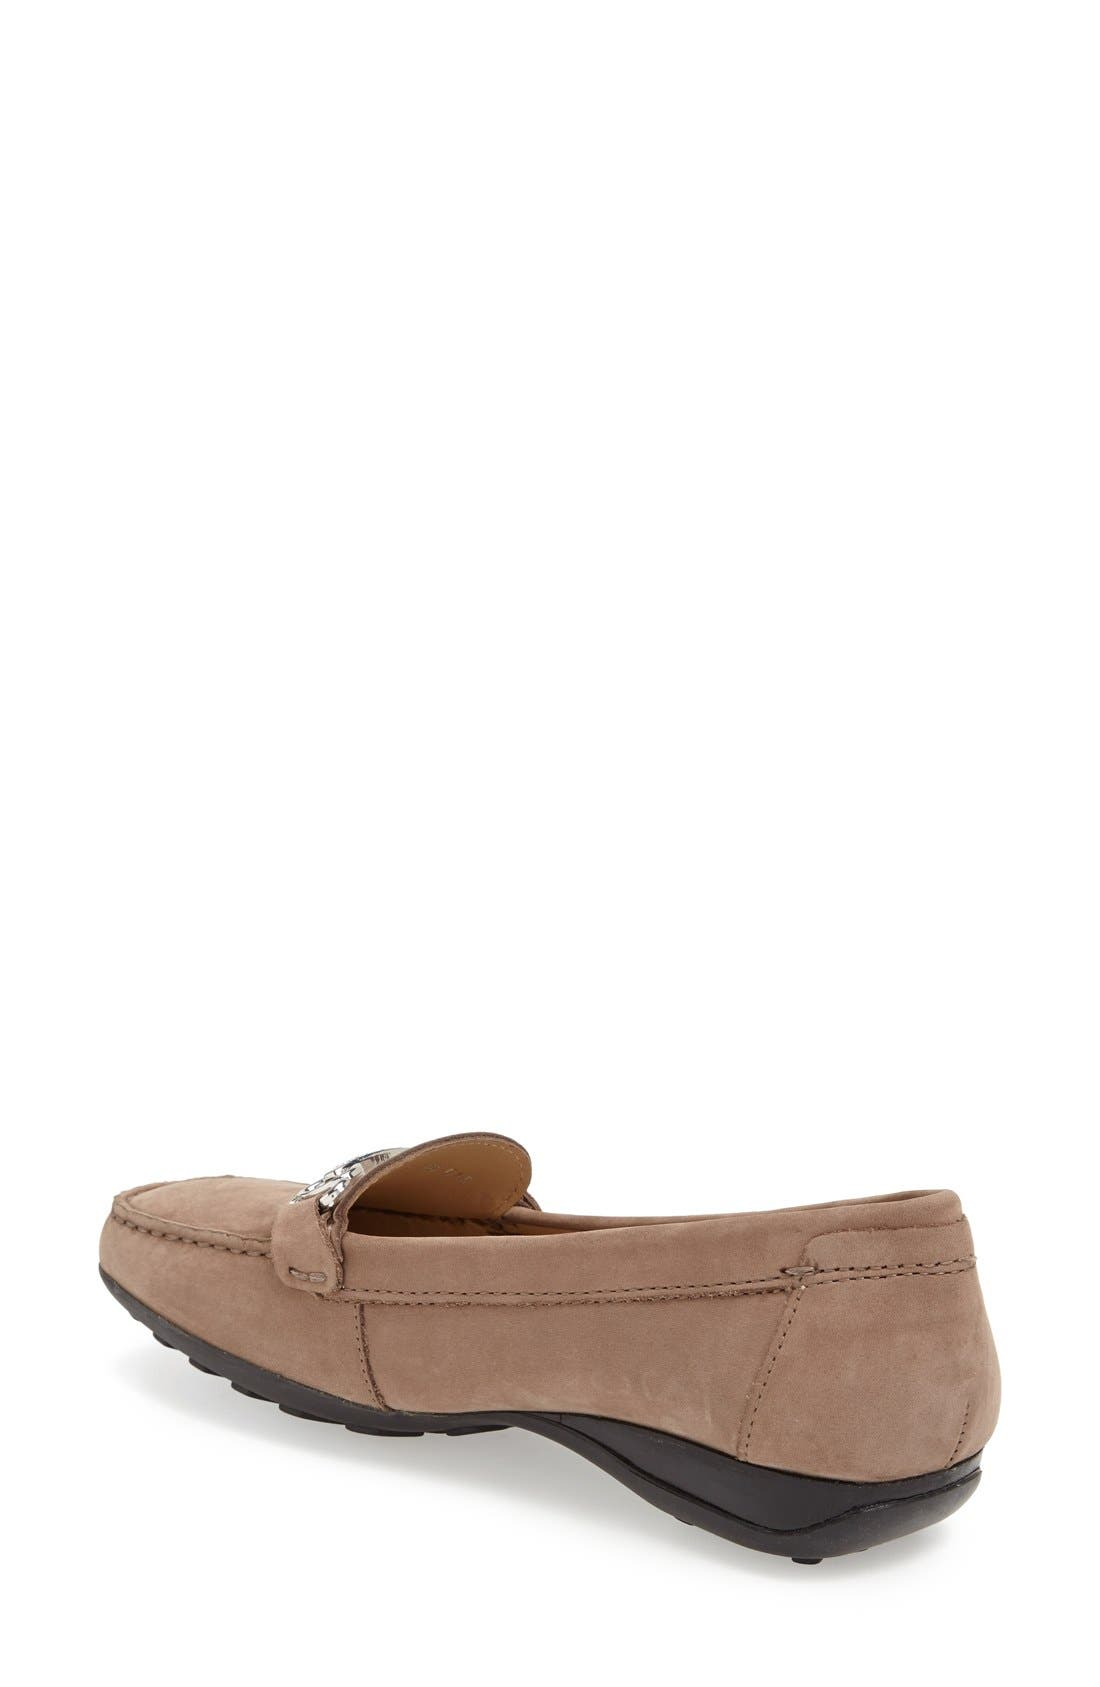 Euro 67 Loafer,                             Alternate thumbnail 22, color,